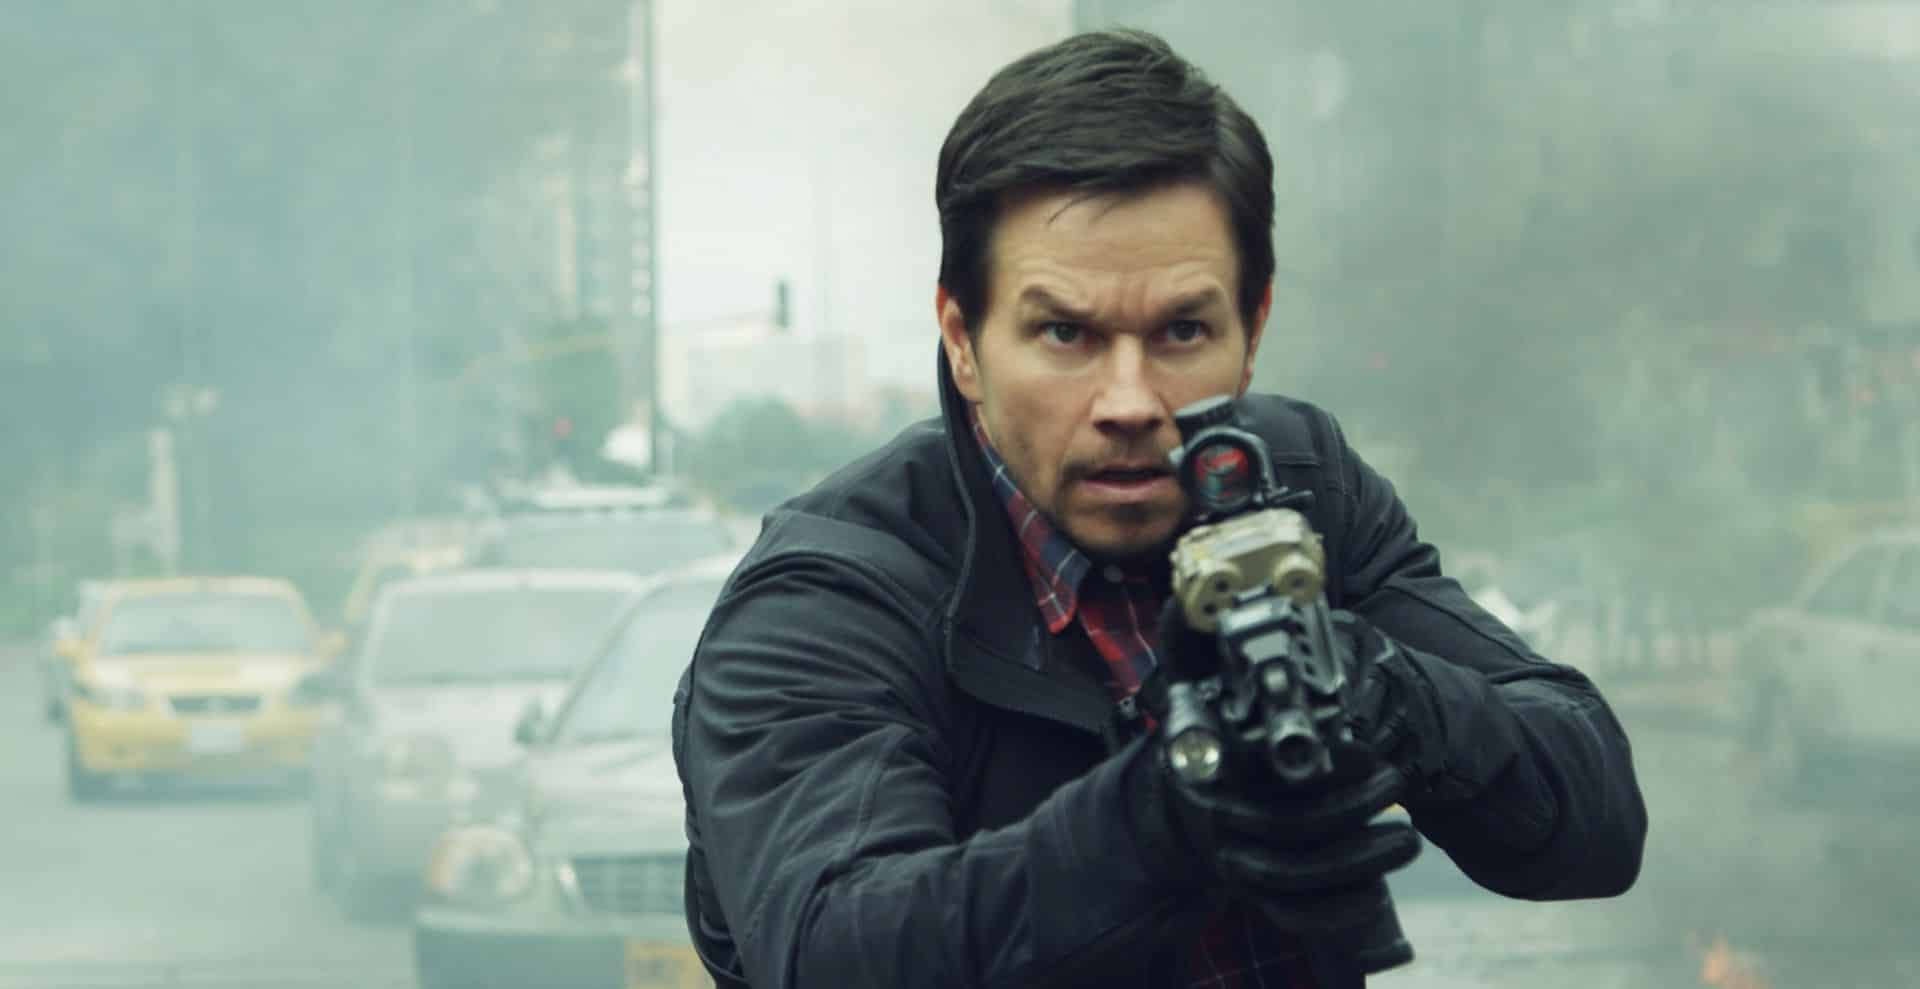 Mark Wahlberg in Mile 22 - Mile 22 Review